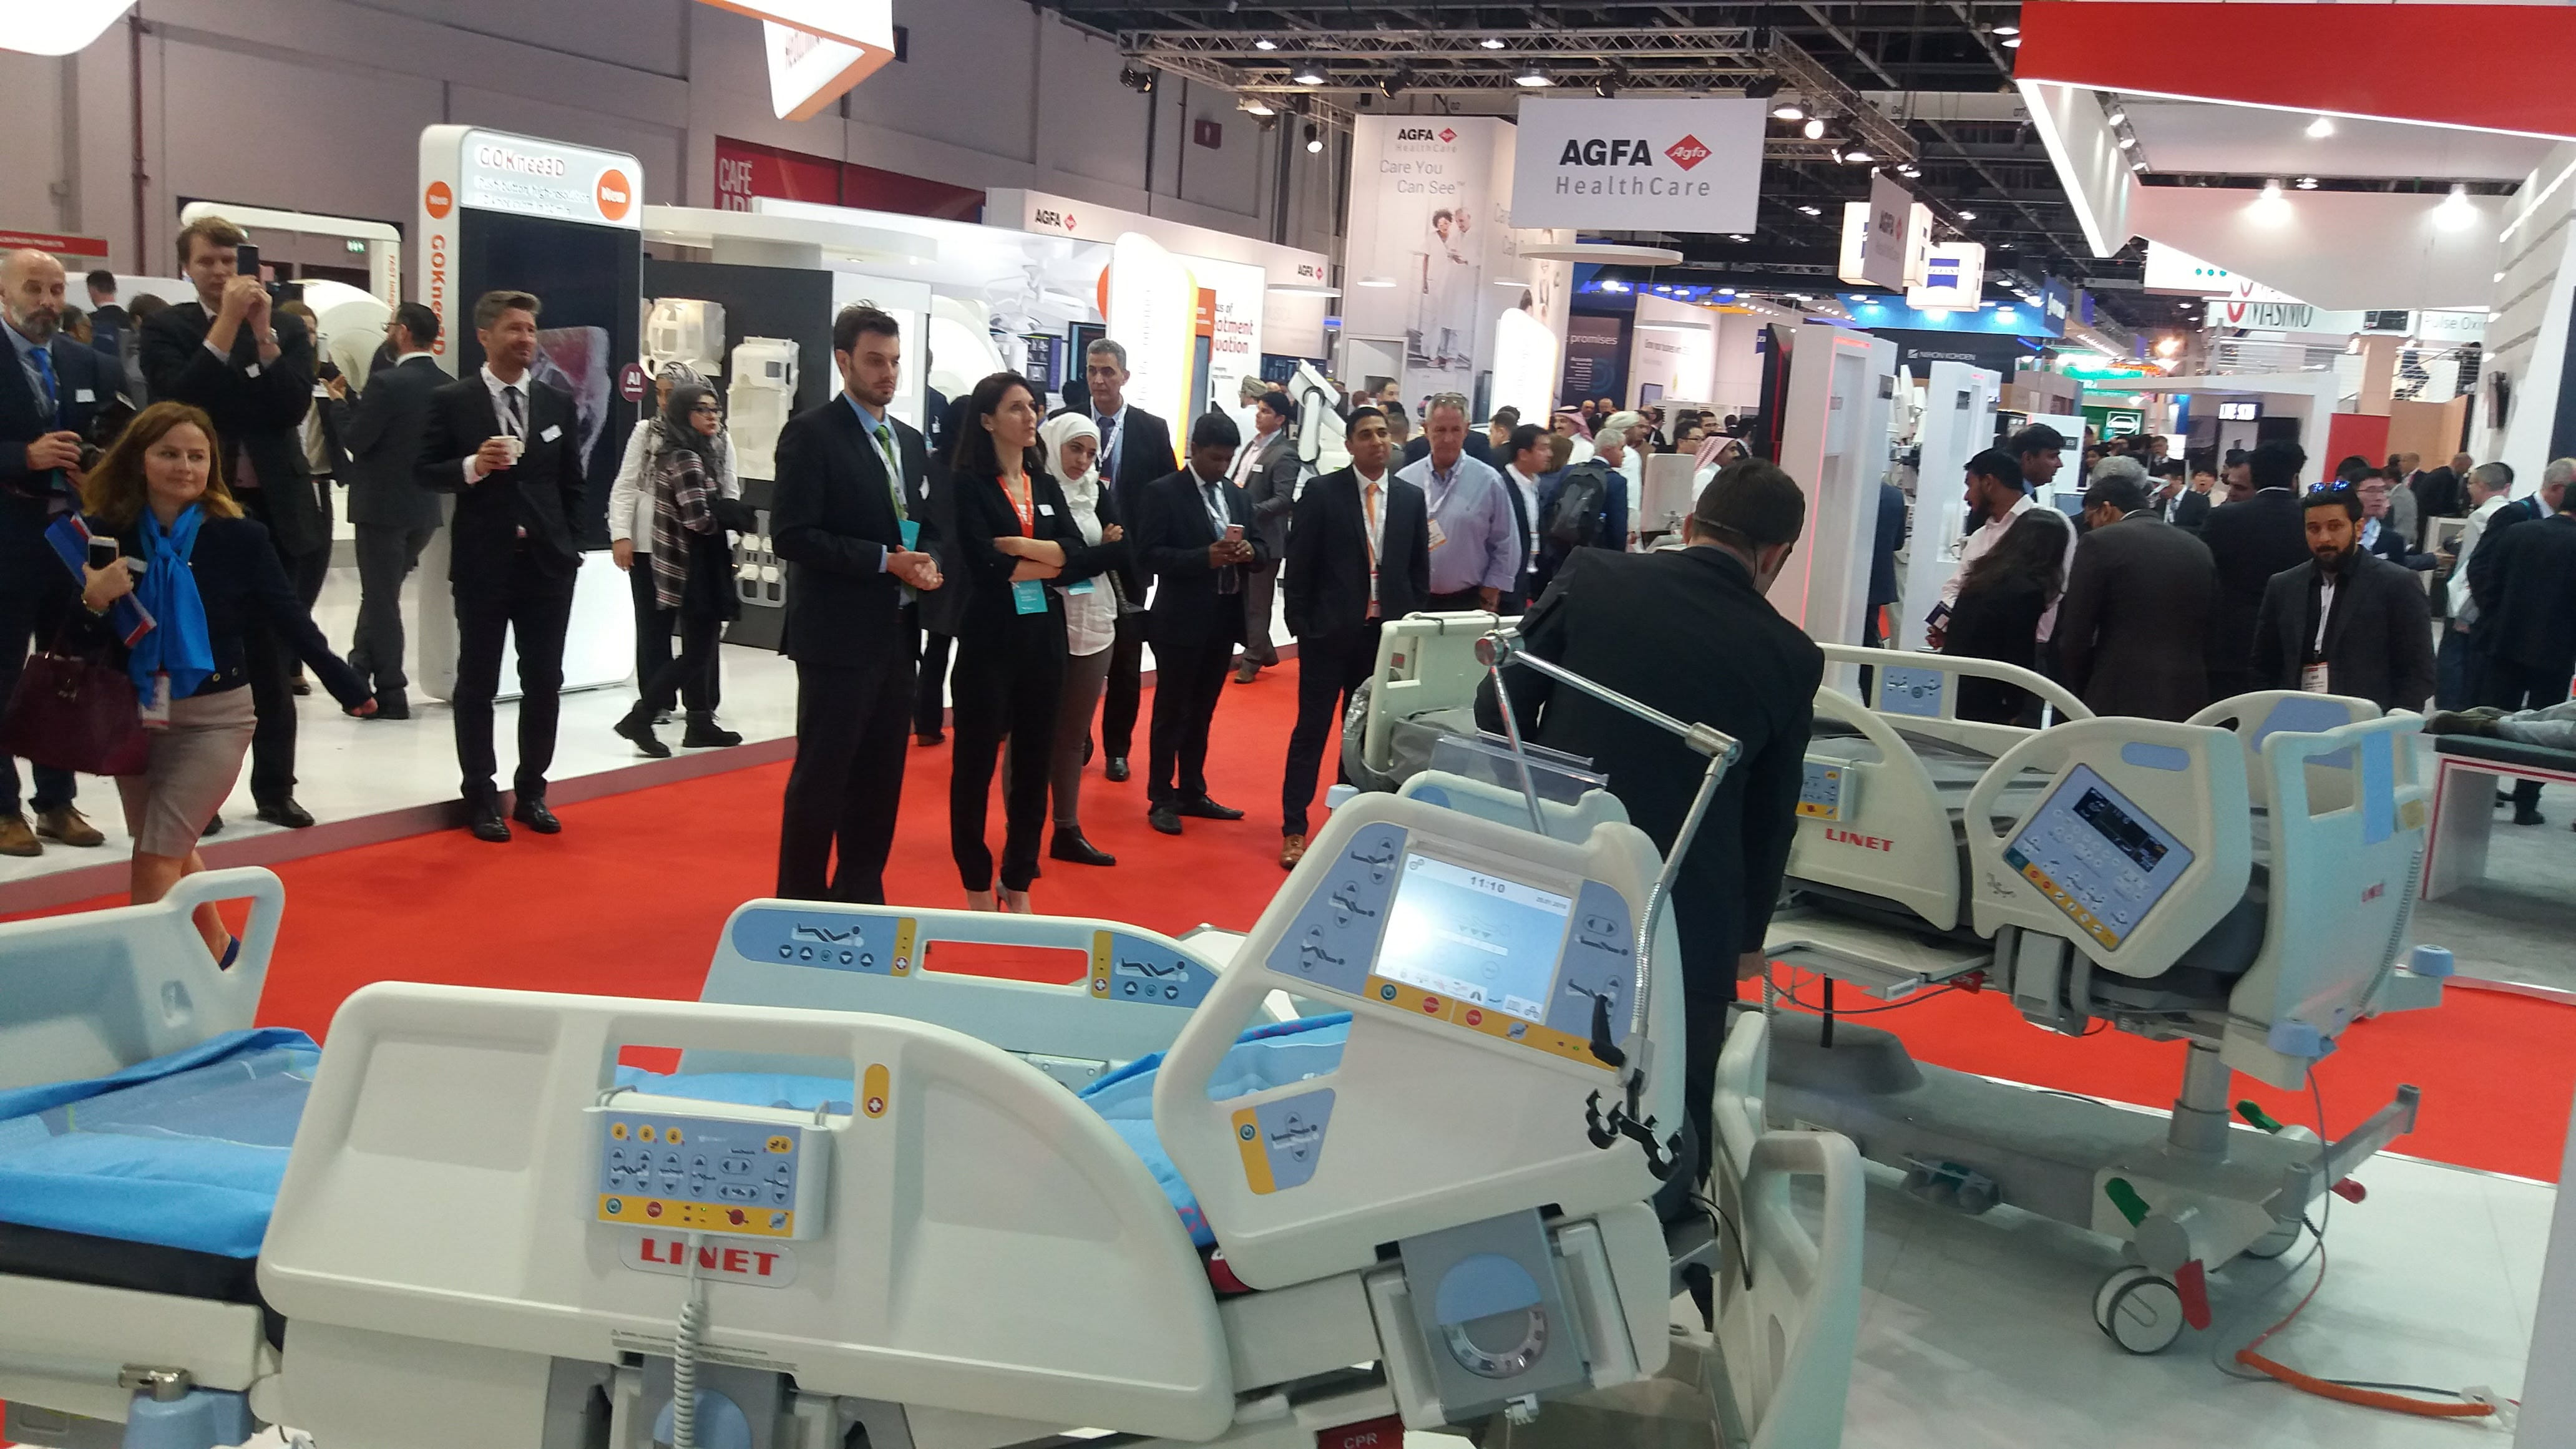 LINET at Arab Health 2018 360°care around you